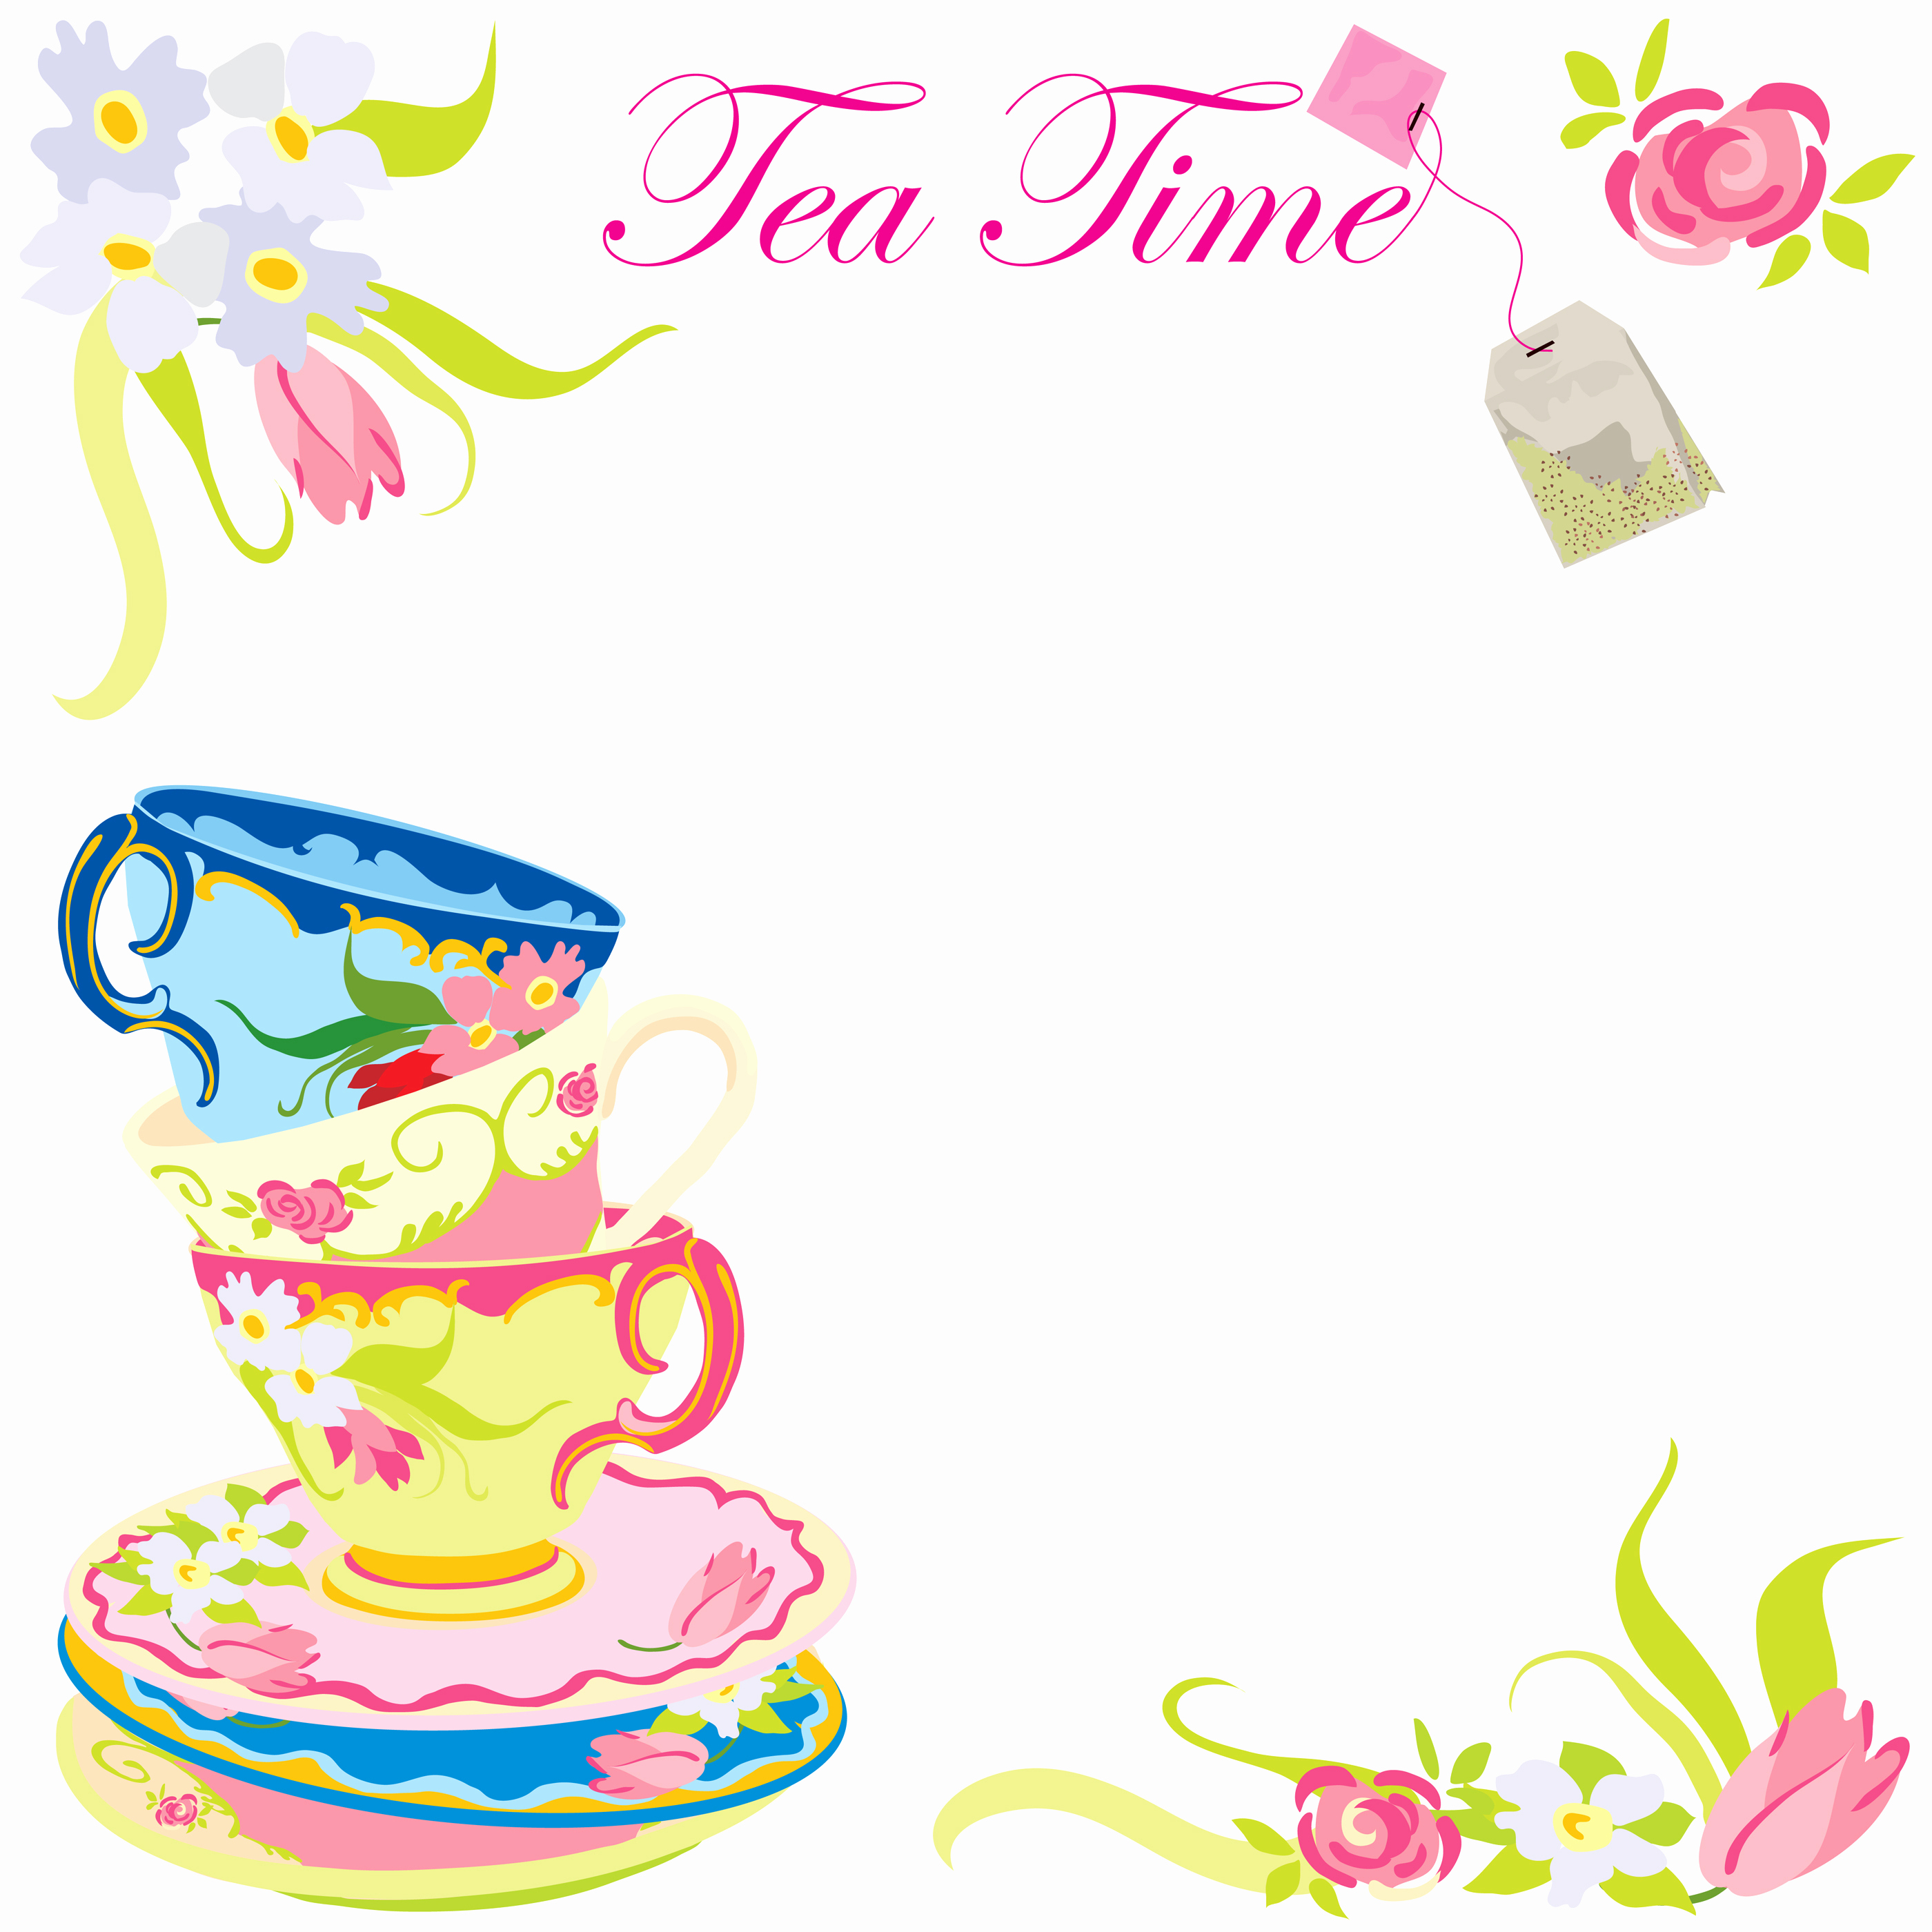 Tea Party Invitation Templates Best Of Free Printable Tea Party Invitations Slumber Party